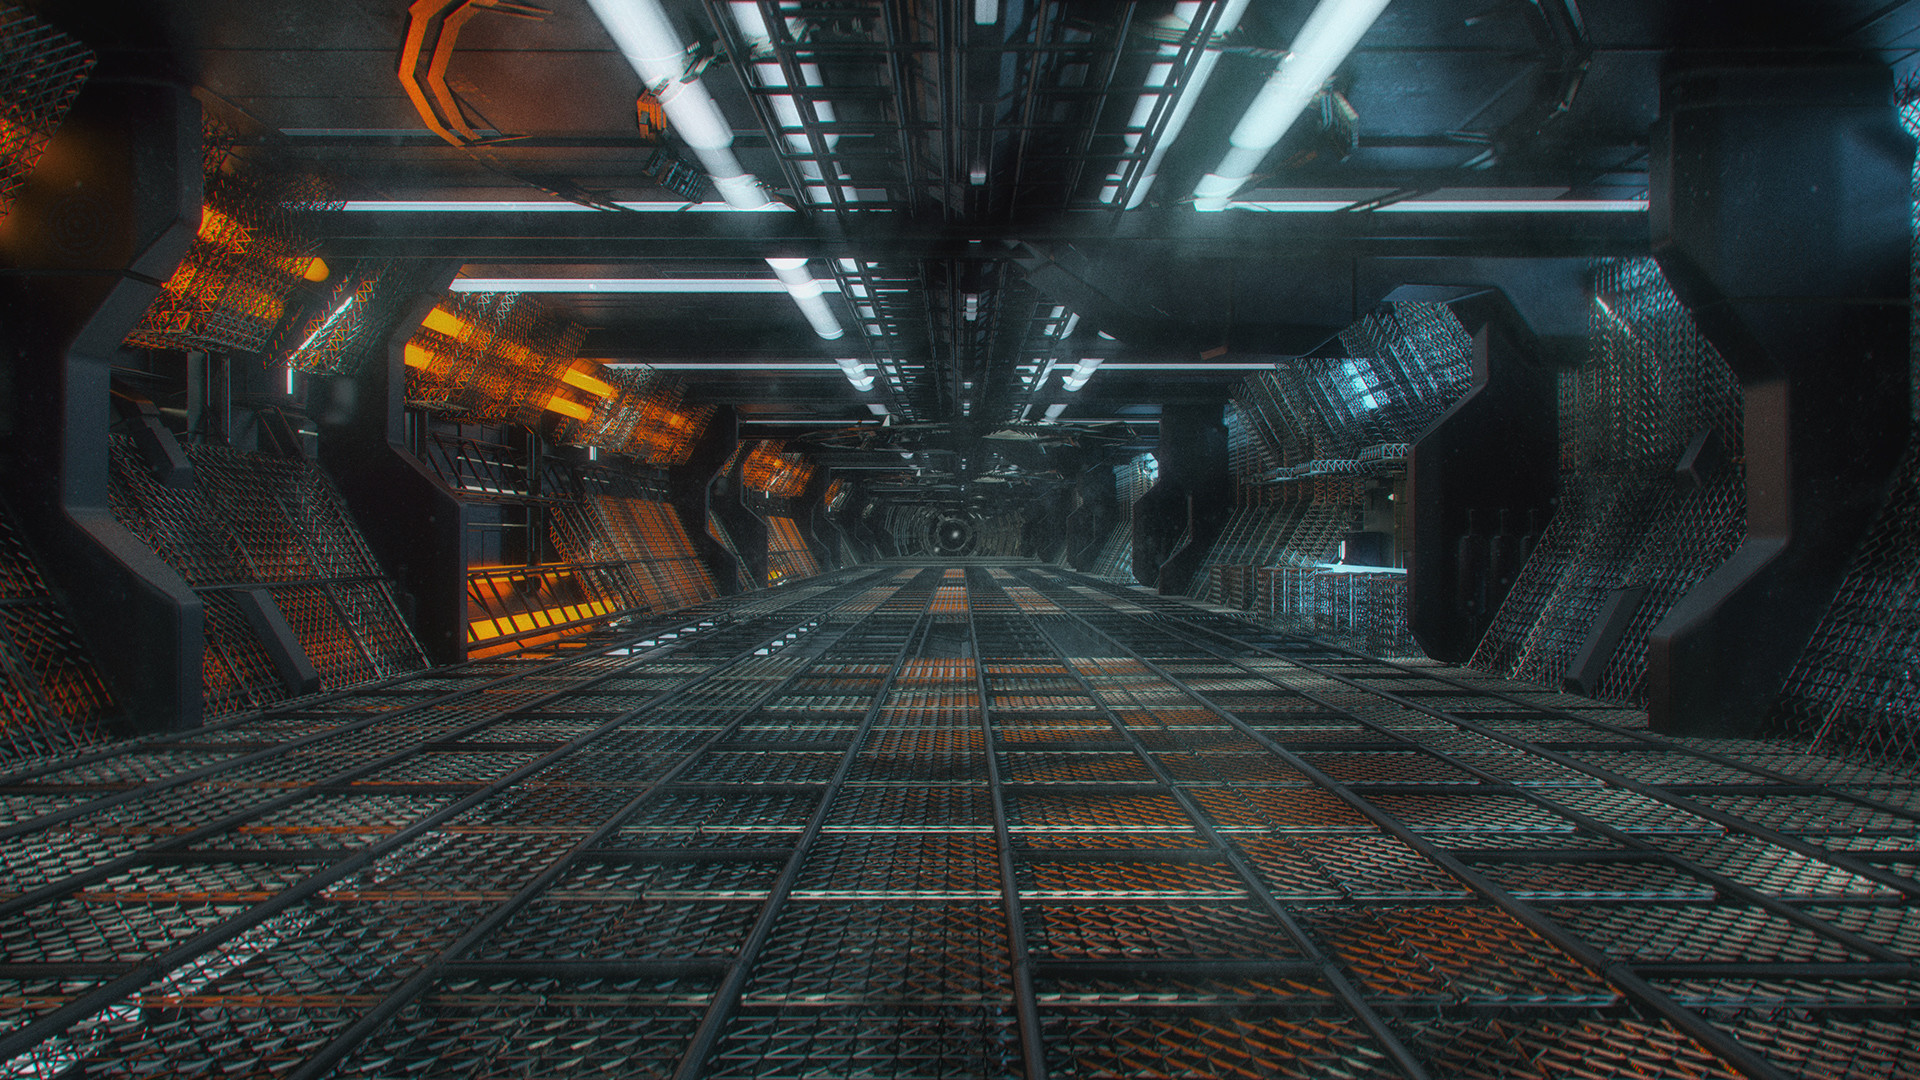 Kresimir jelusic 98 150116 space station corridor